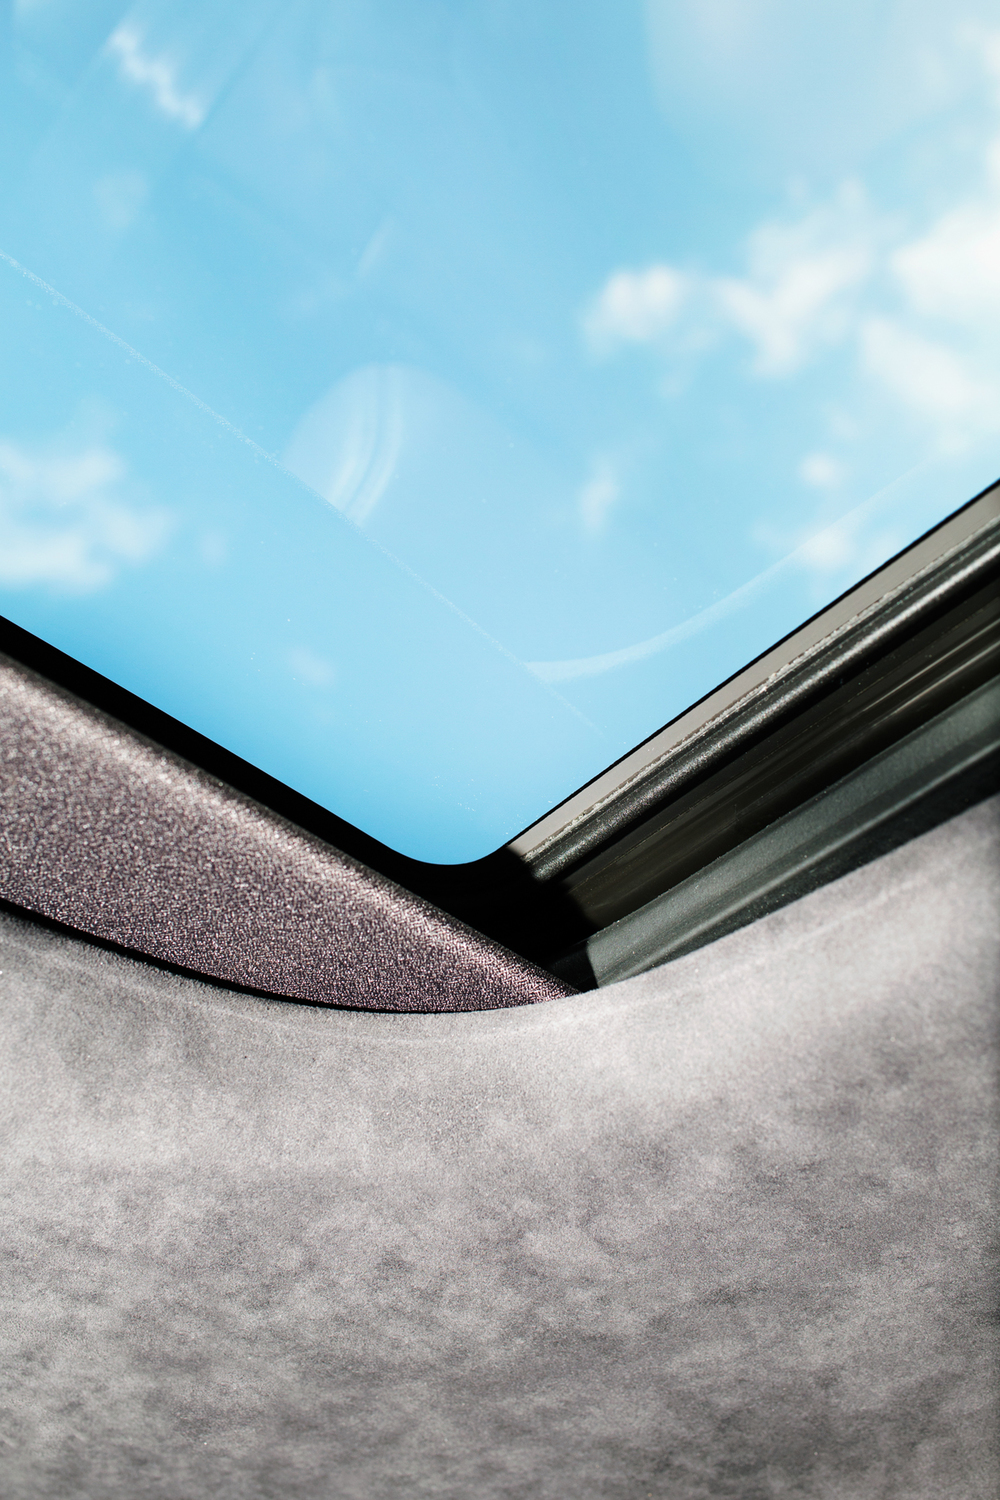 kate owen w mag magazine lincoln cars detail shot sky suede sunroof